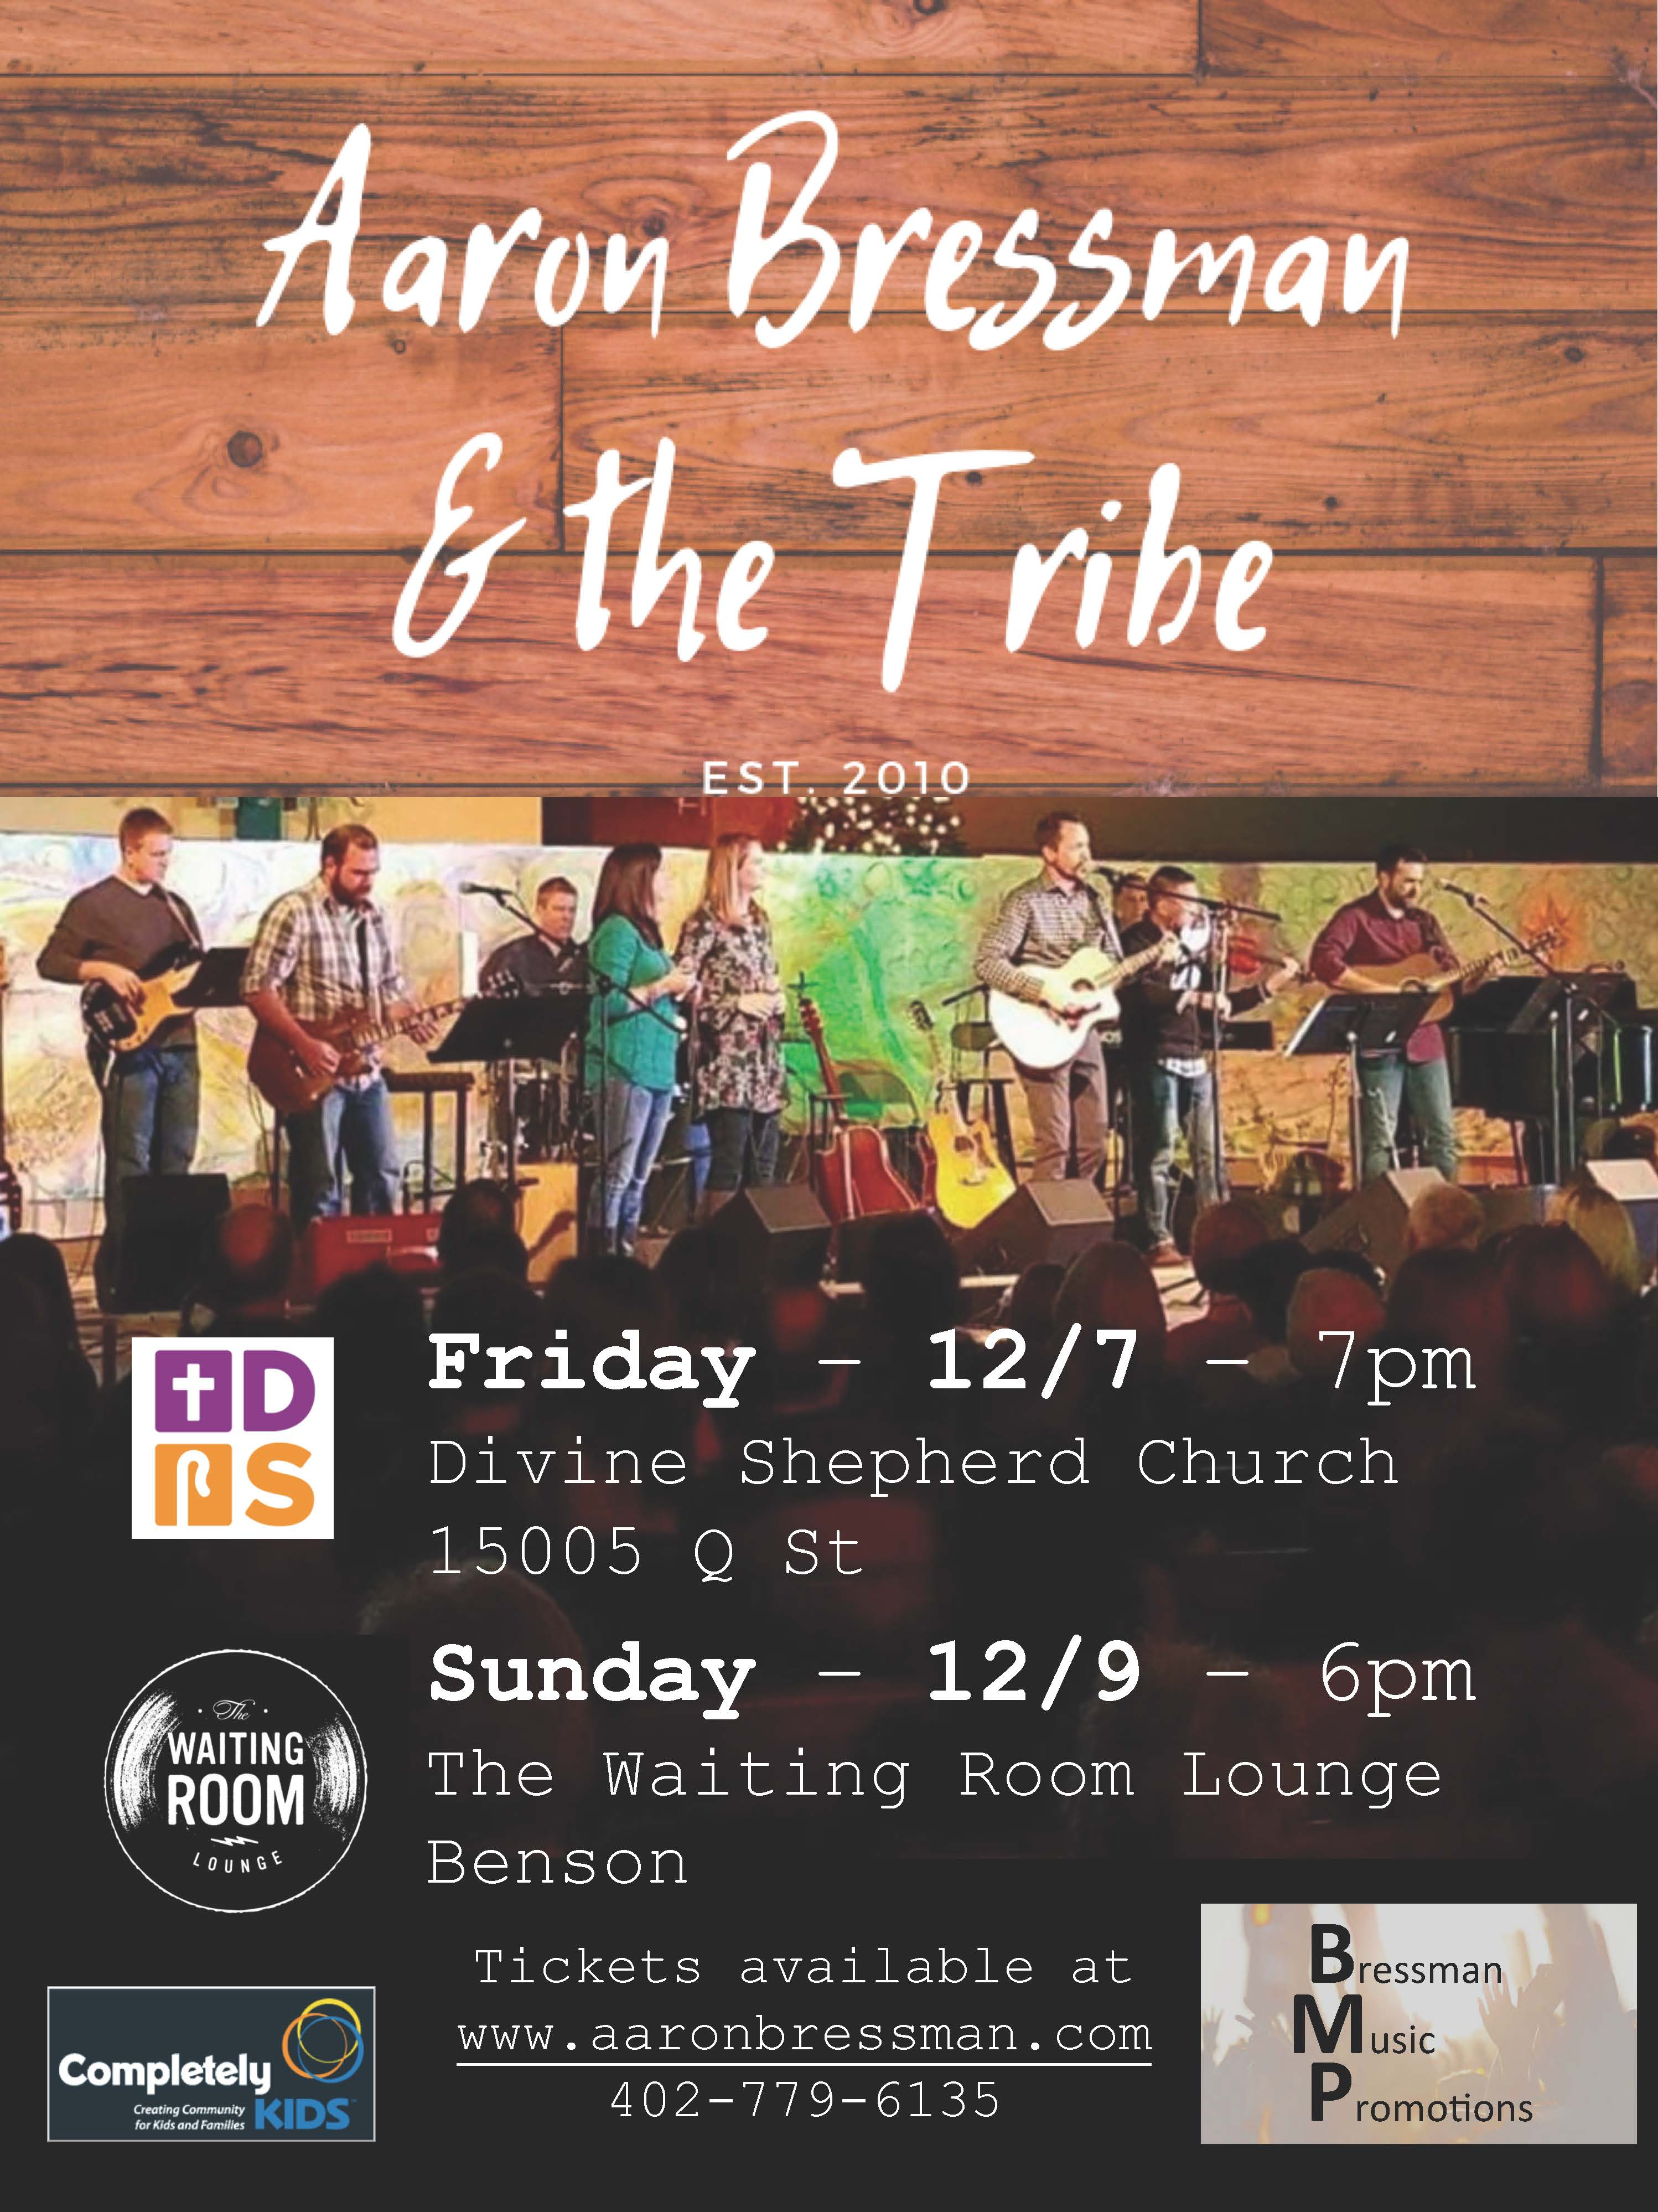 Tickets on Sale: Concerts featuring Aaron Bressman & the Tribe to Benefit CK